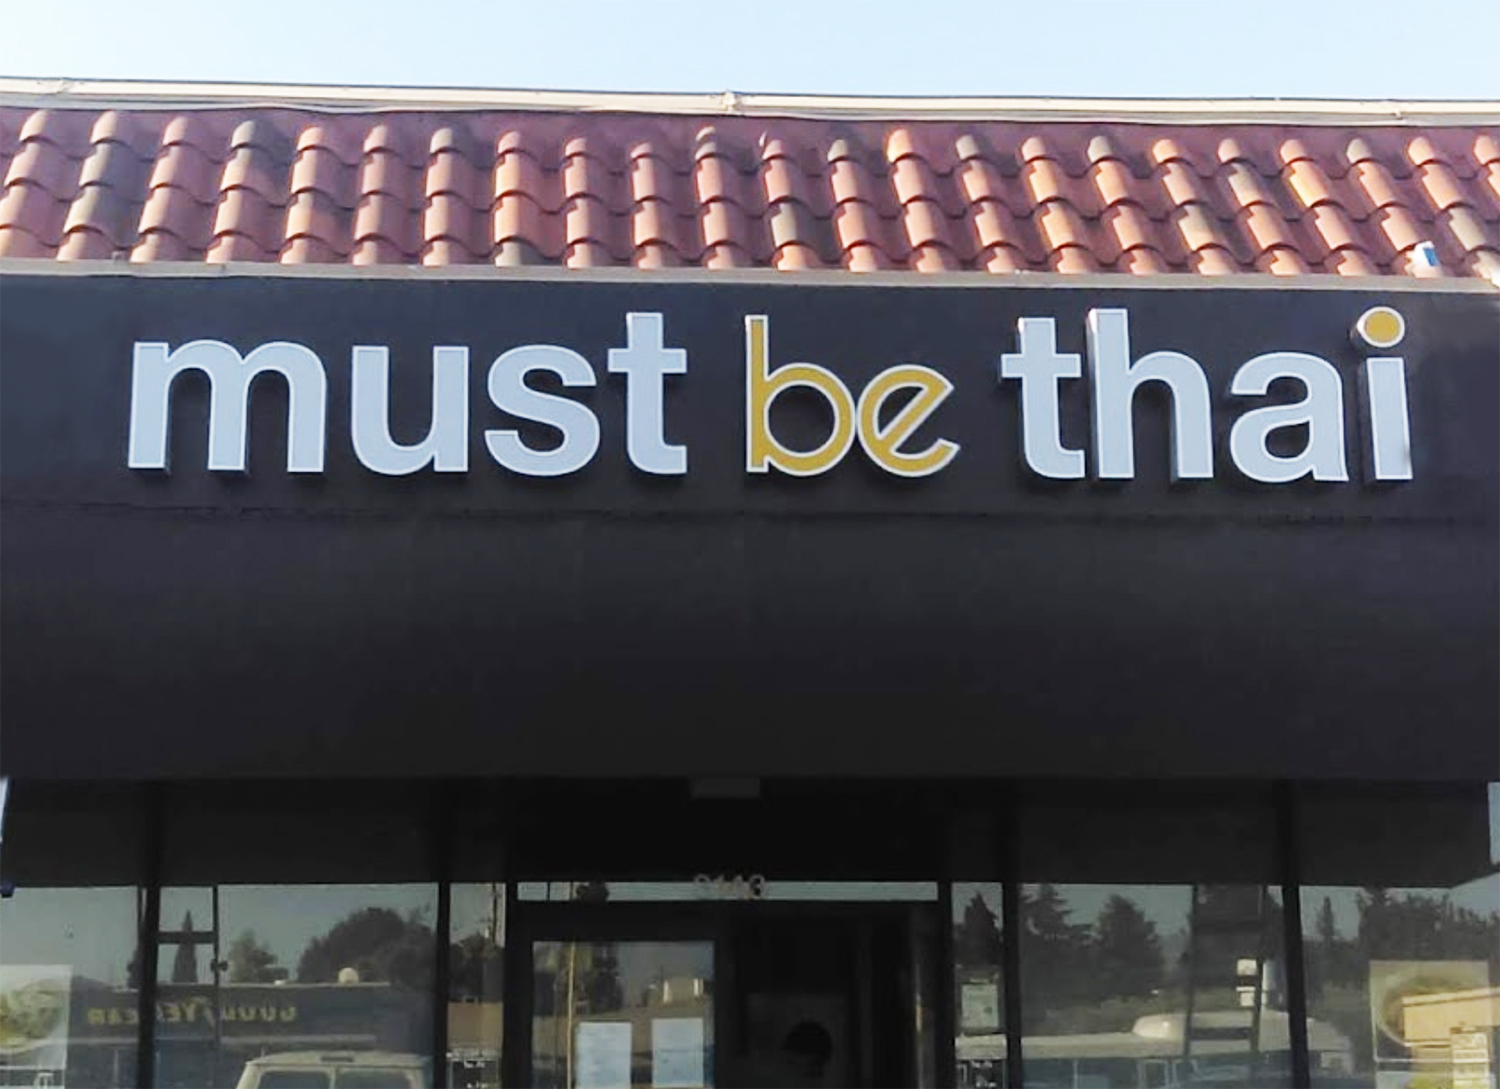 Channel letter sign for Must be Thai, Santa Clara CA